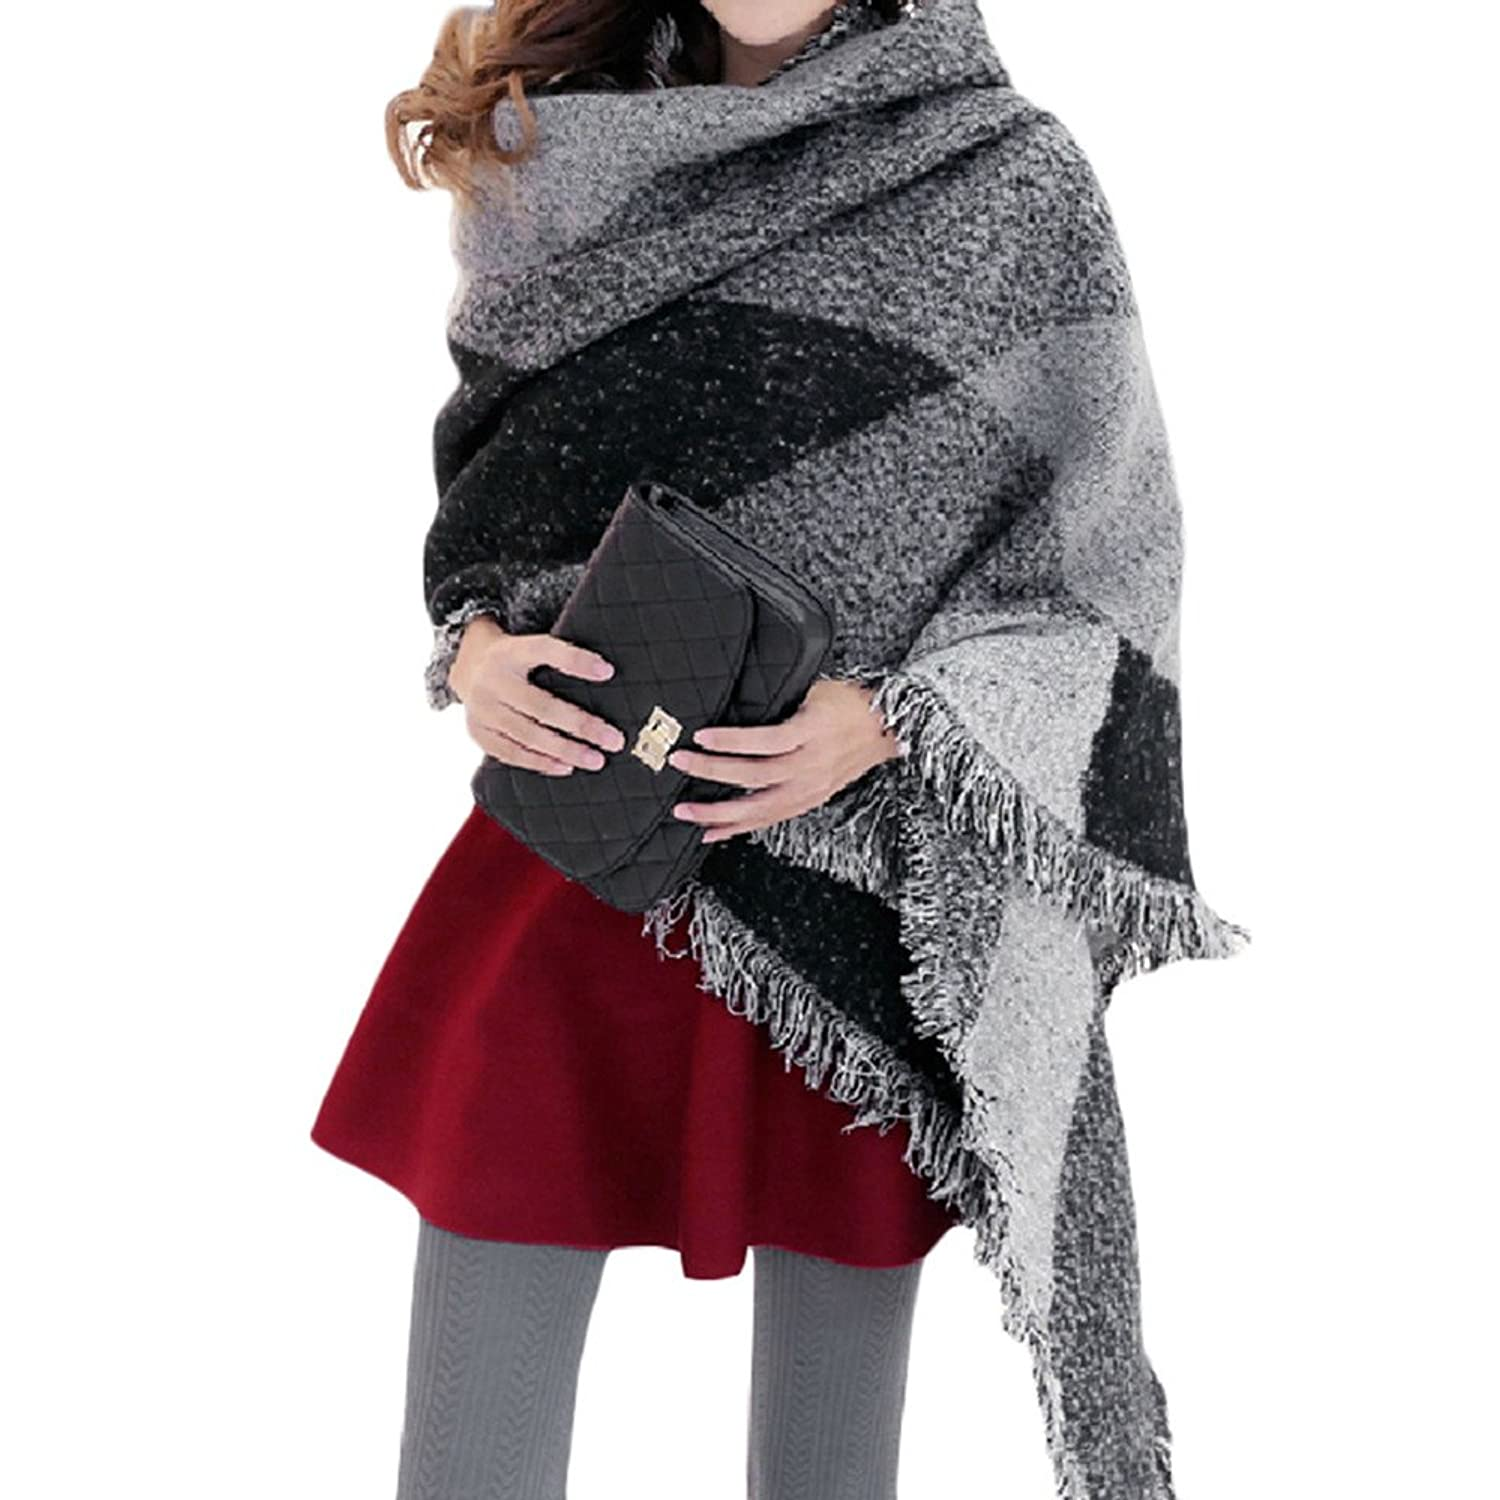 New Women Girls Blend Long Warm Scarves Soft Wrap Scarf Winter Warm Shawl